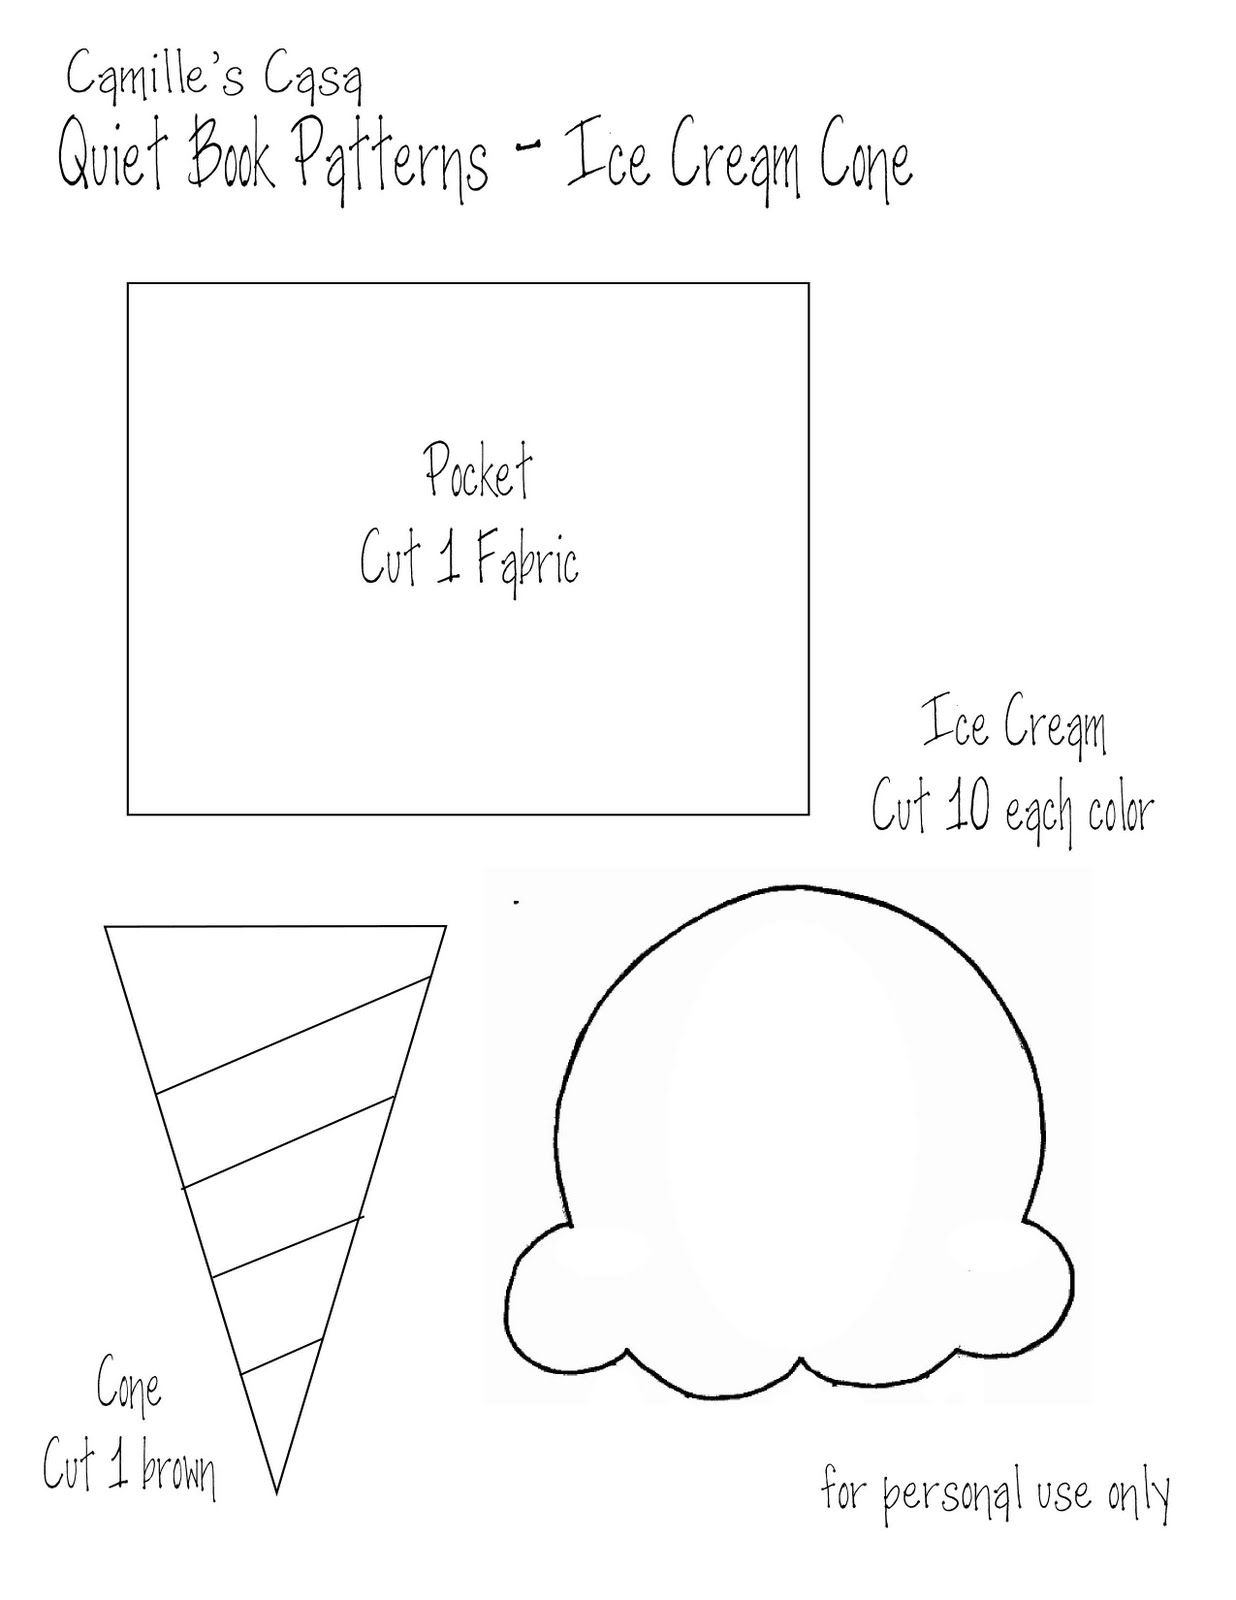 Camille s Casa Quiet Book Pattern and Printable Ice Cream